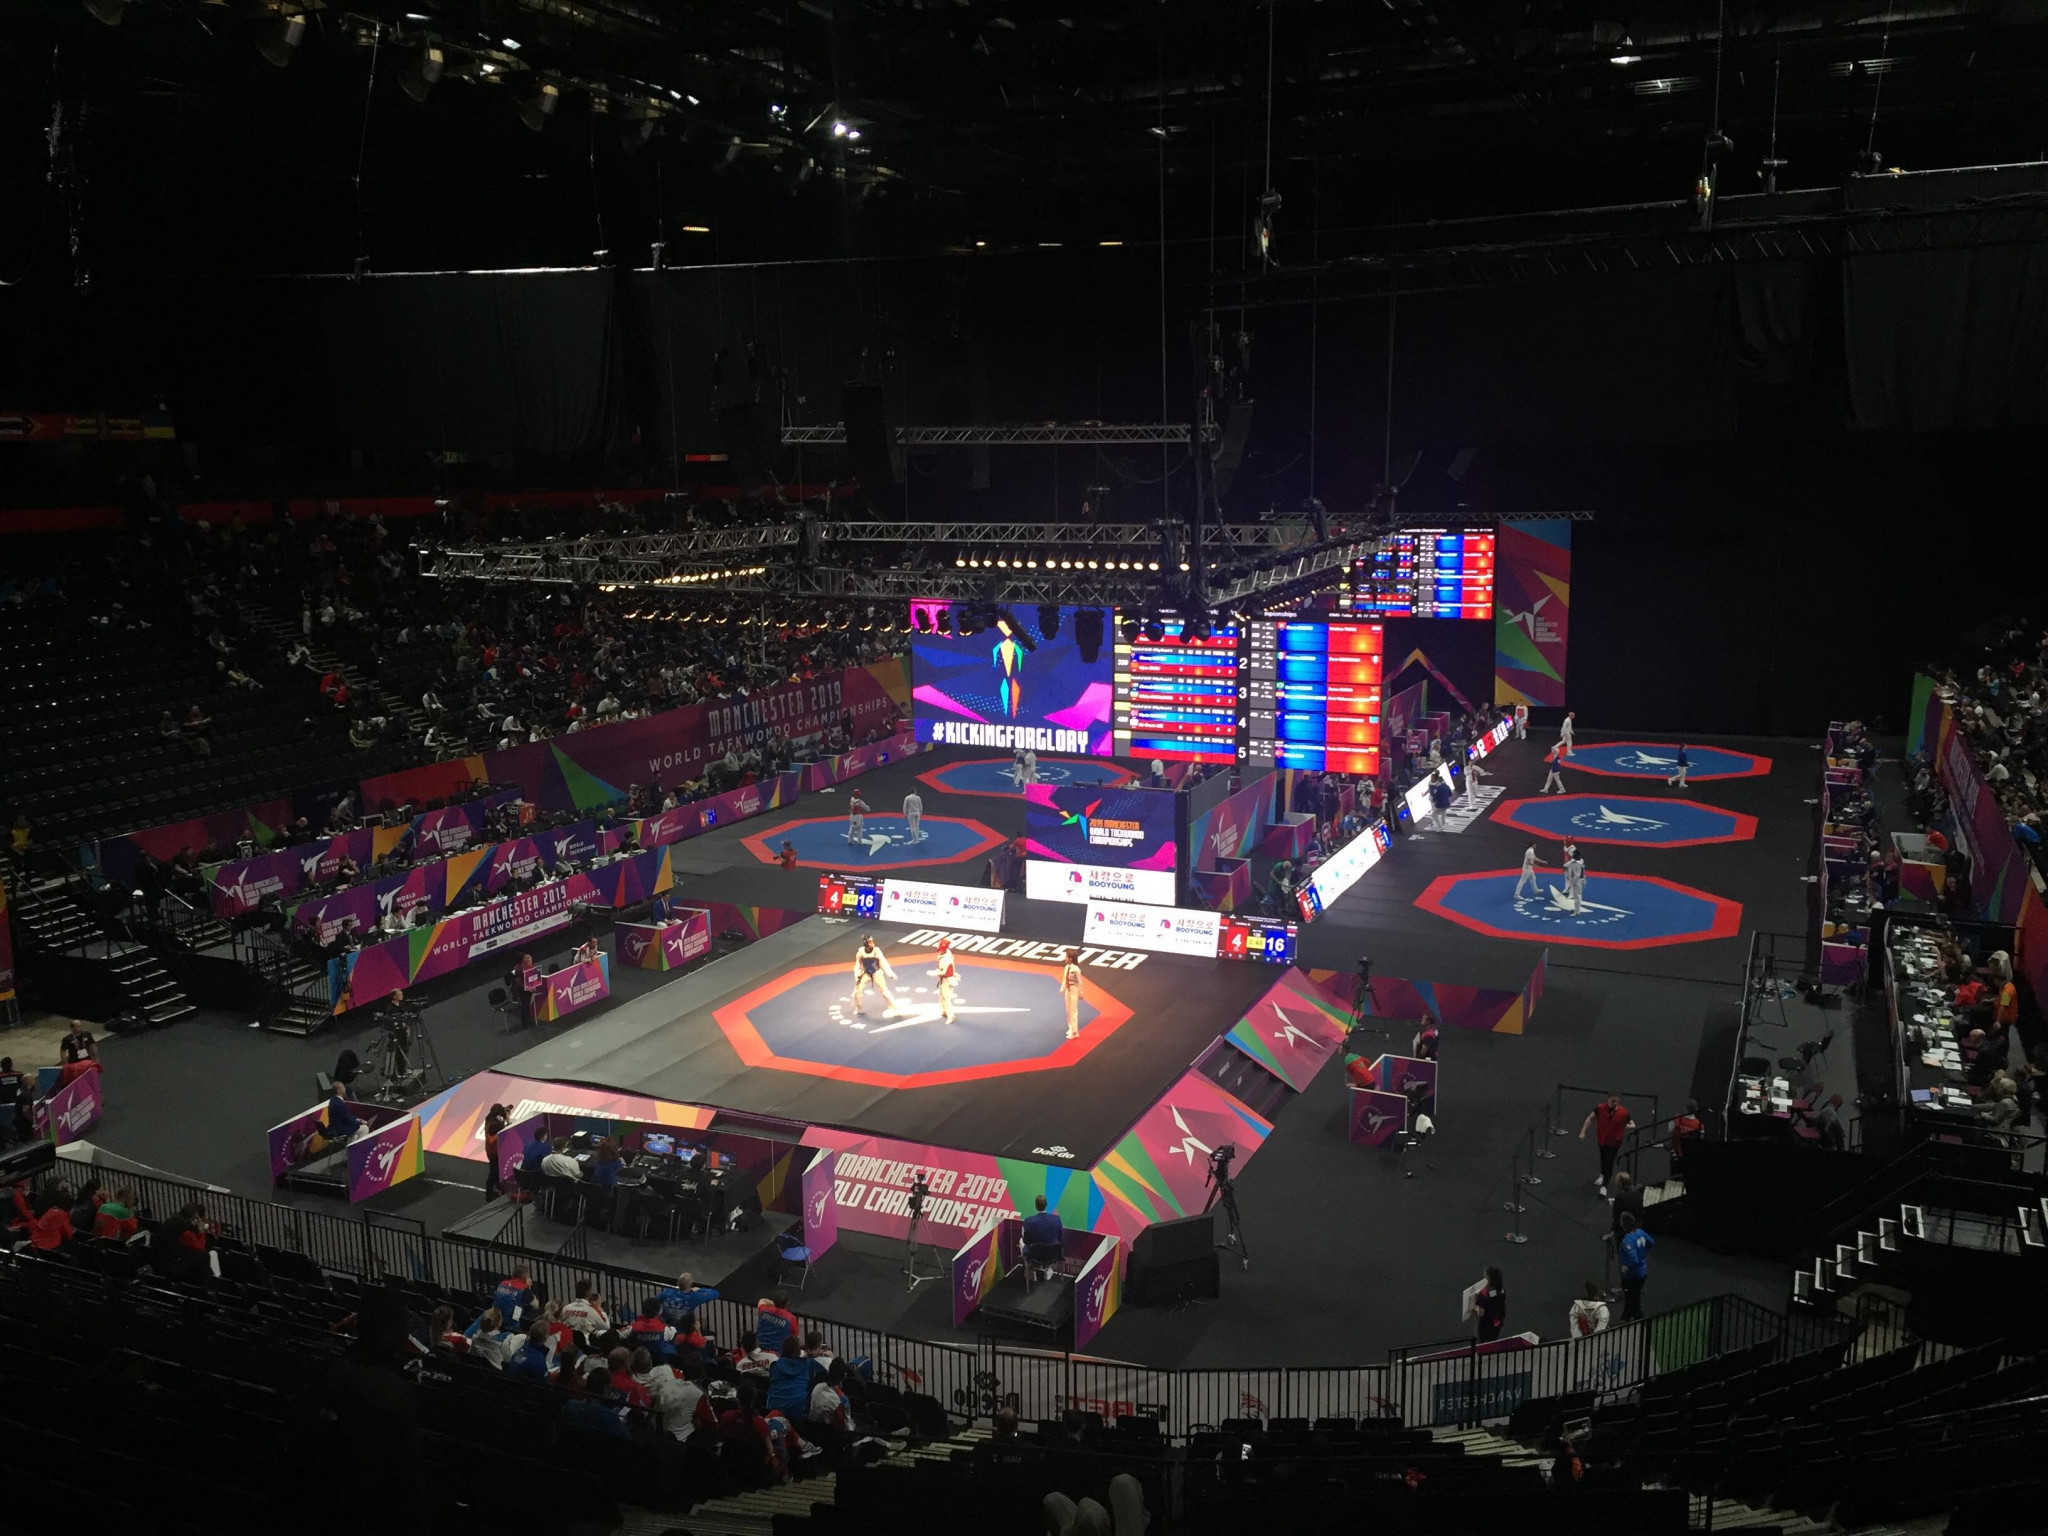 insidethegames are reporting LIVE from the 2019 World Taekwondo Championships in Manchester